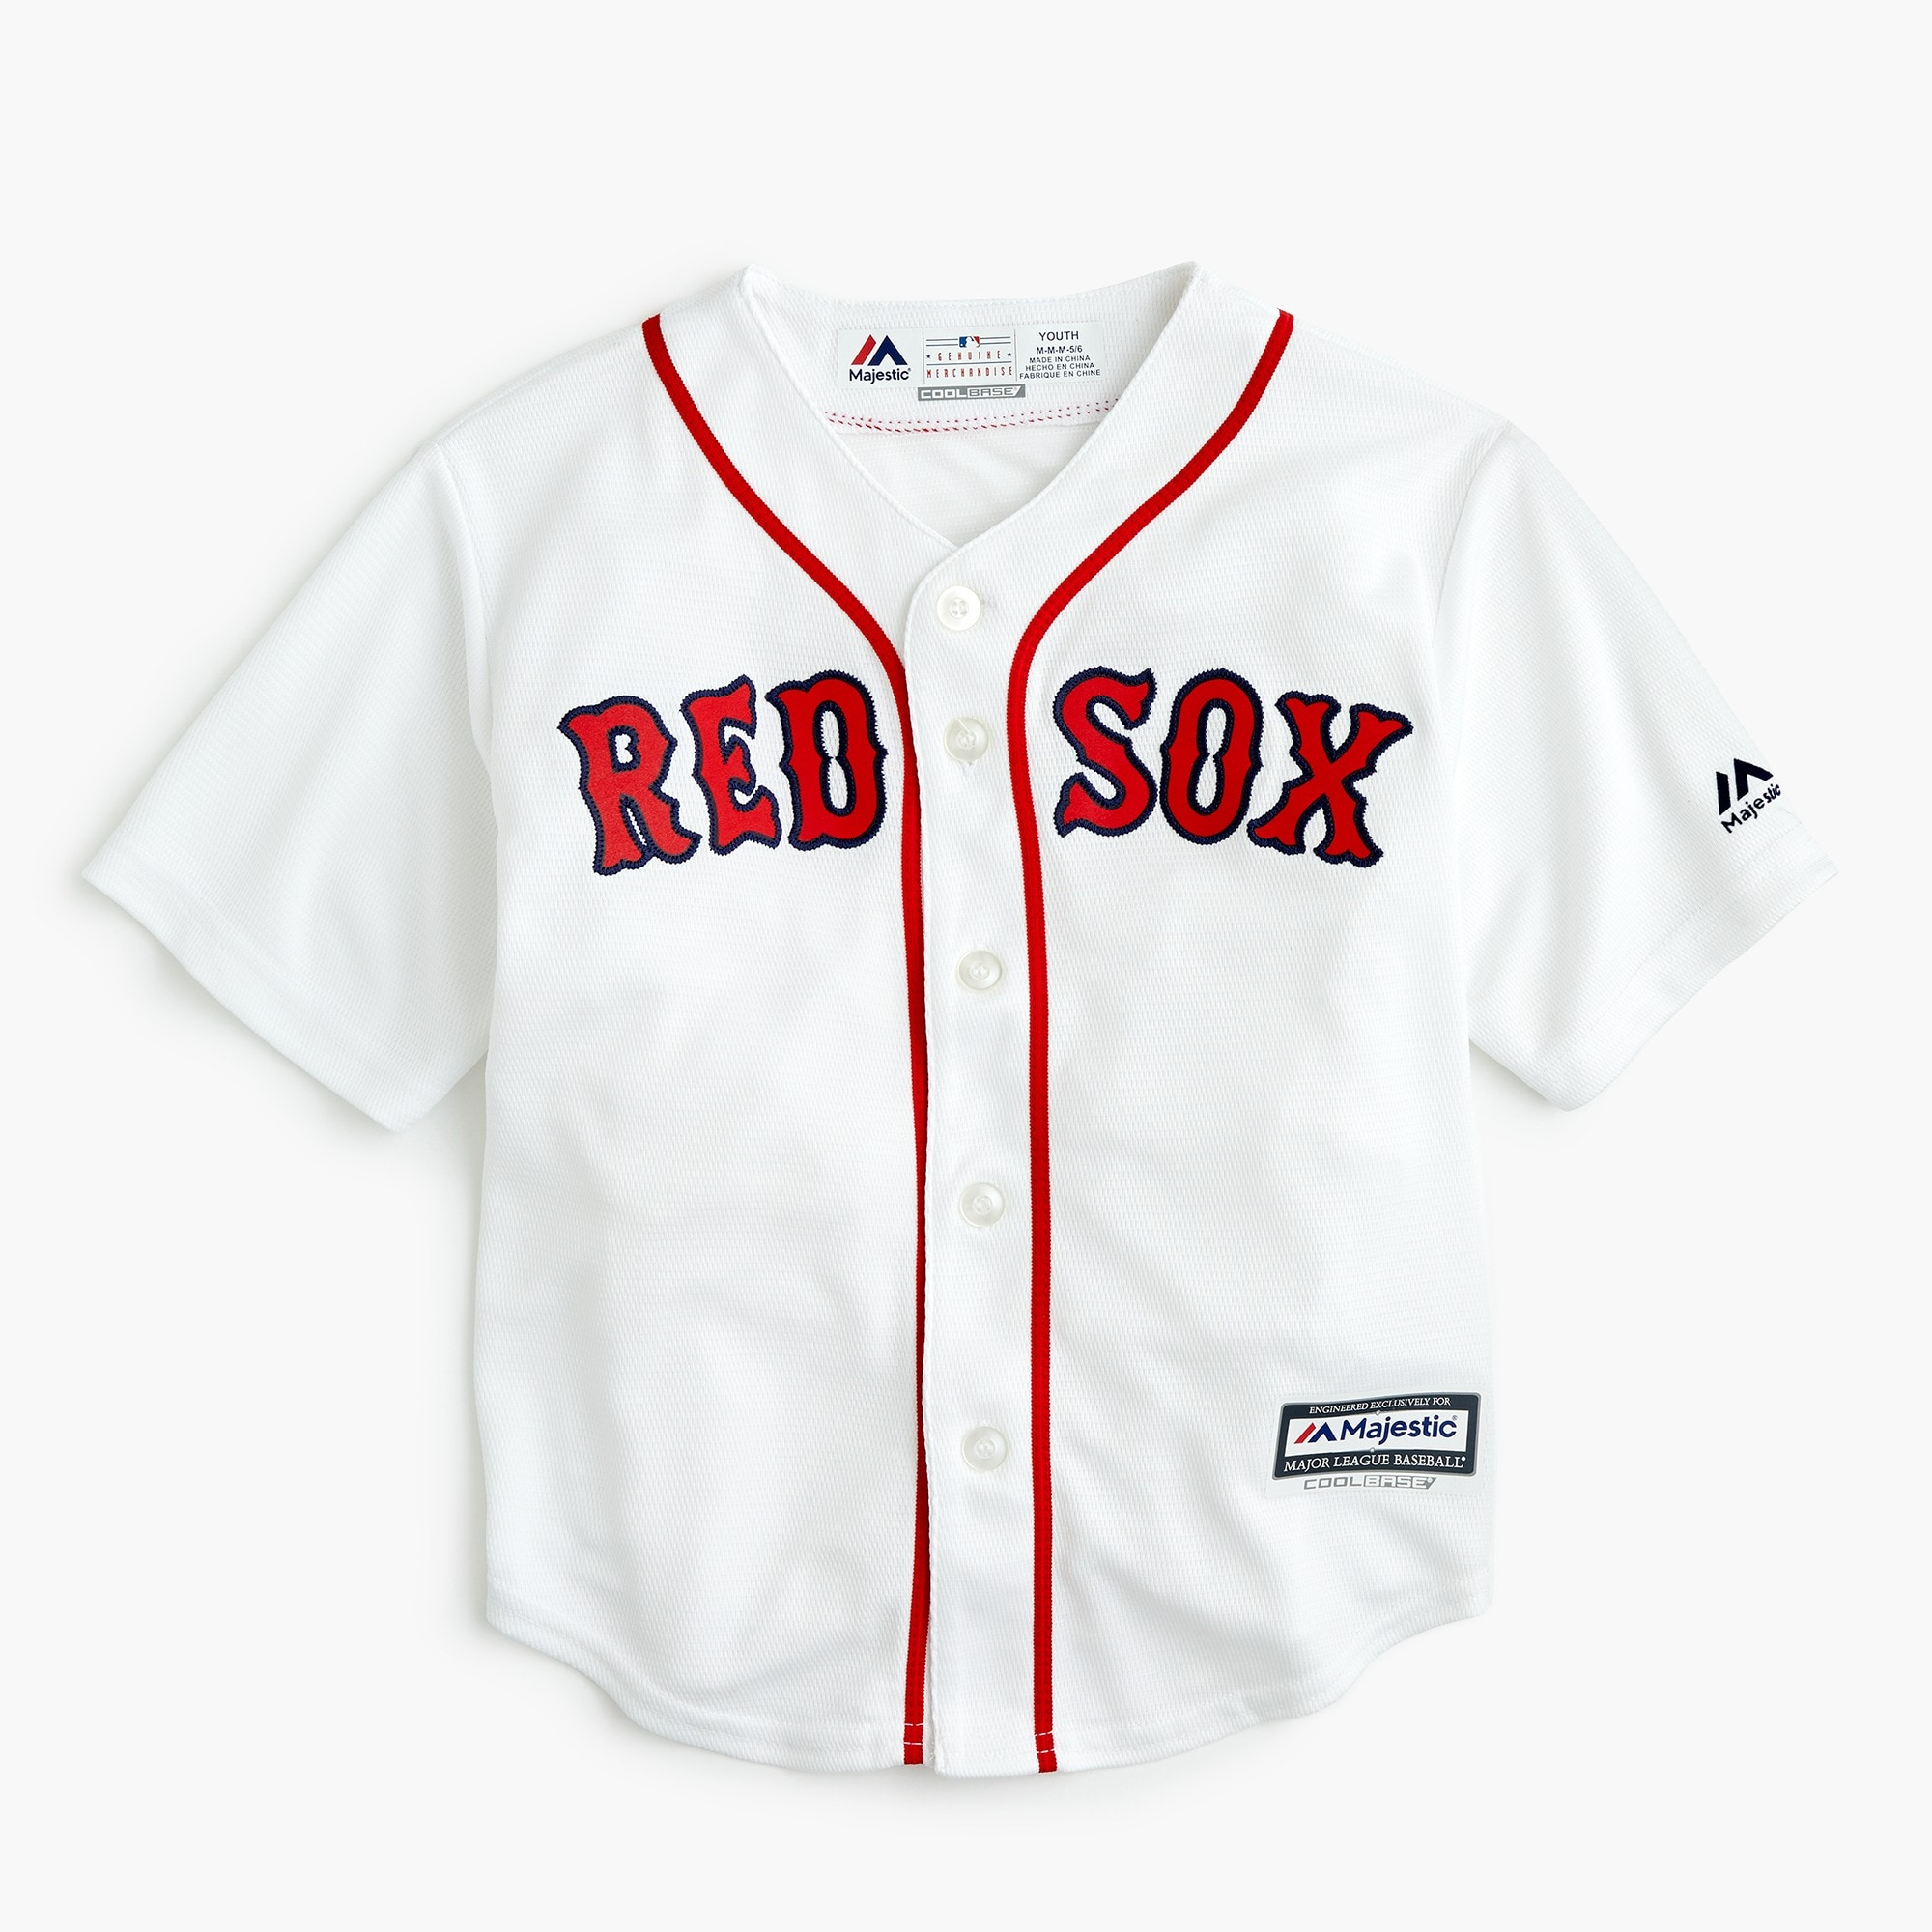 Kids' Boston Red Sox jersey boy graphics shop c